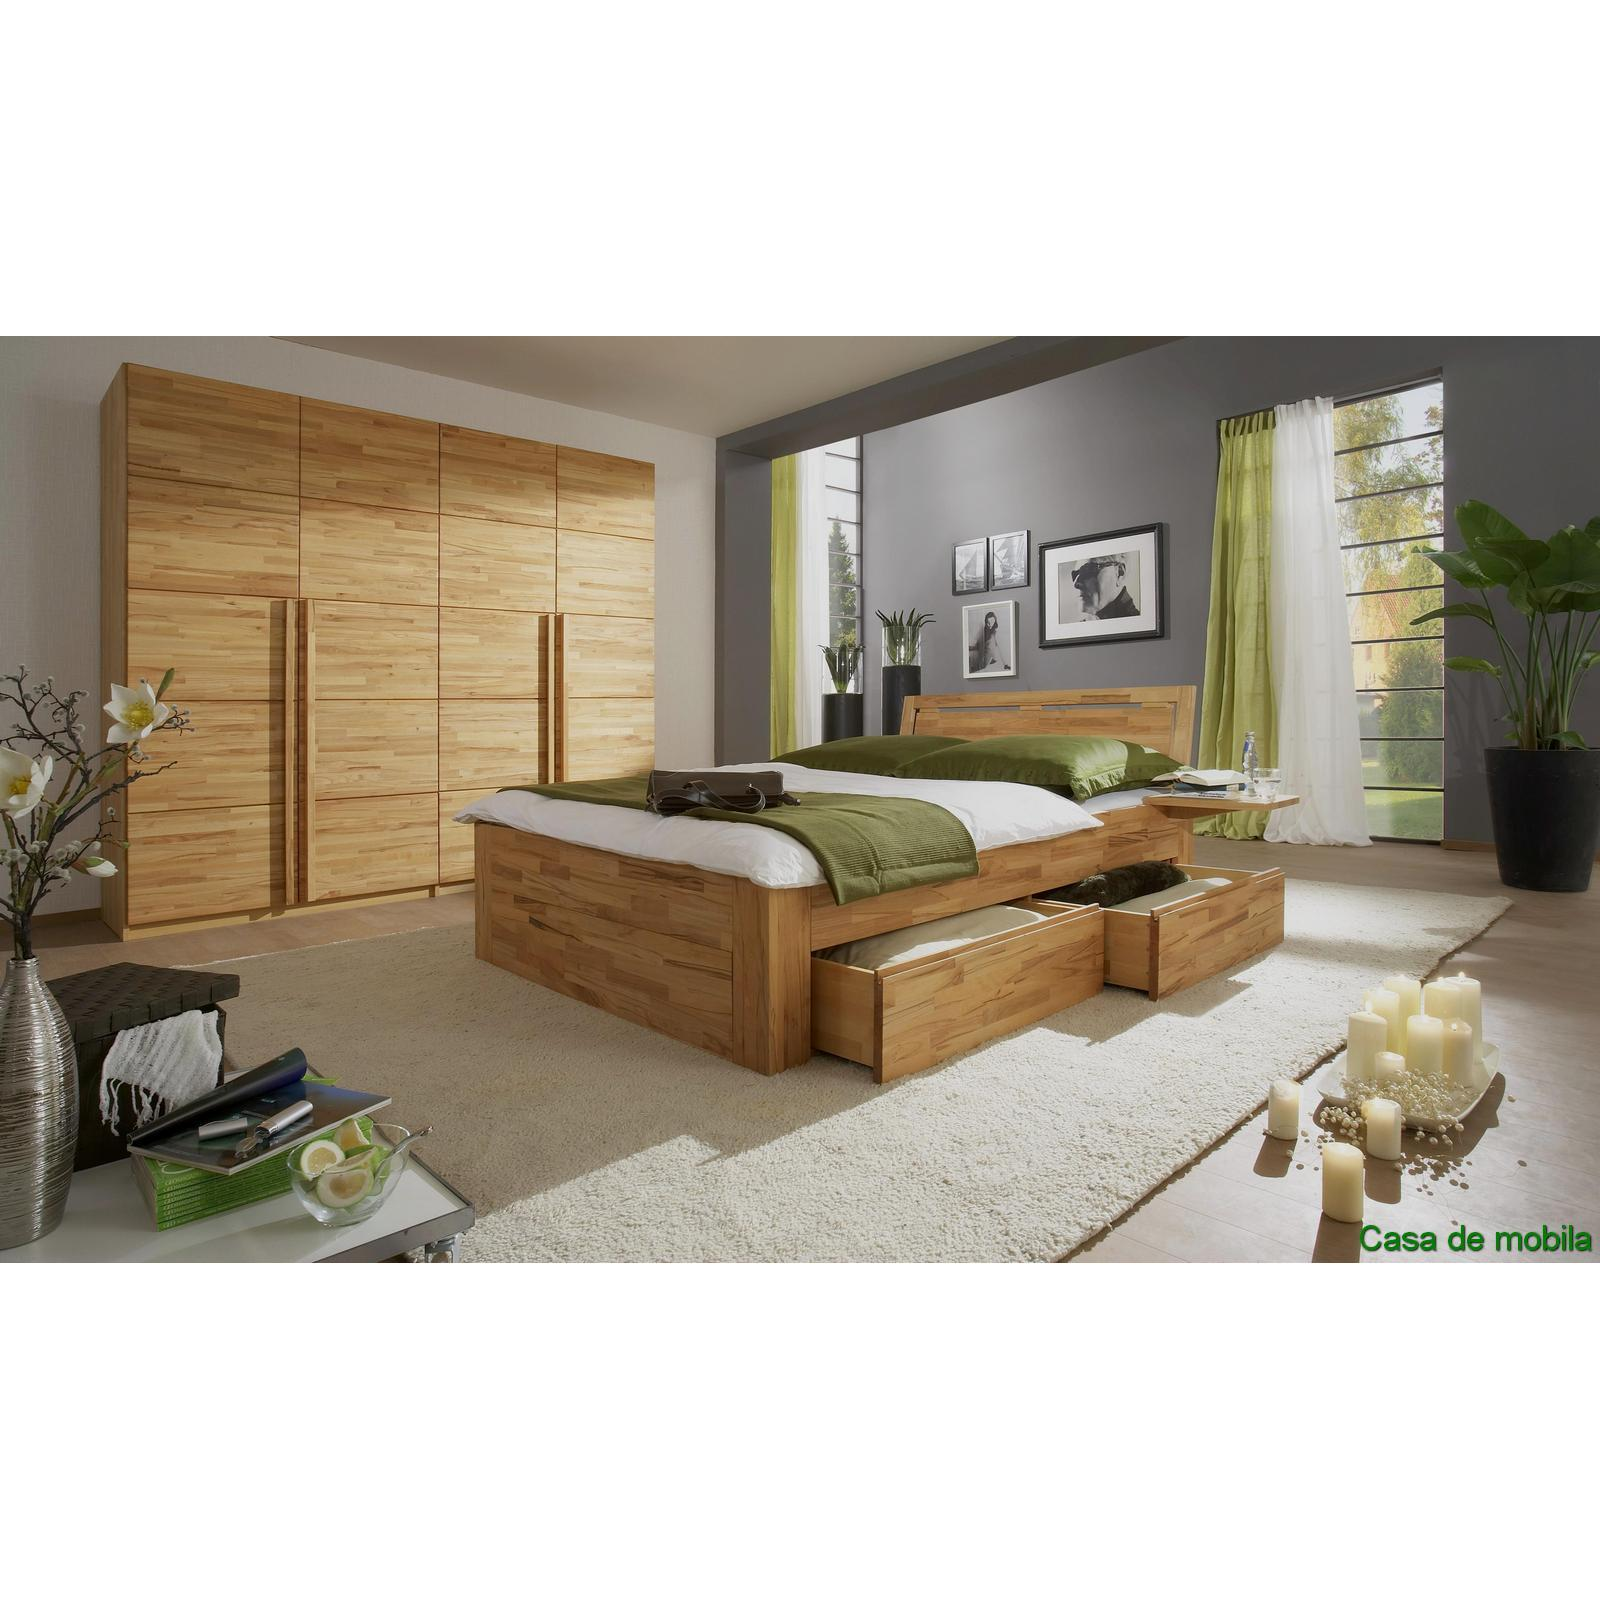 vollholz schlafzimmer komplett kernbuche buche massiv caro mit schubladen bett 160x200. Black Bedroom Furniture Sets. Home Design Ideas